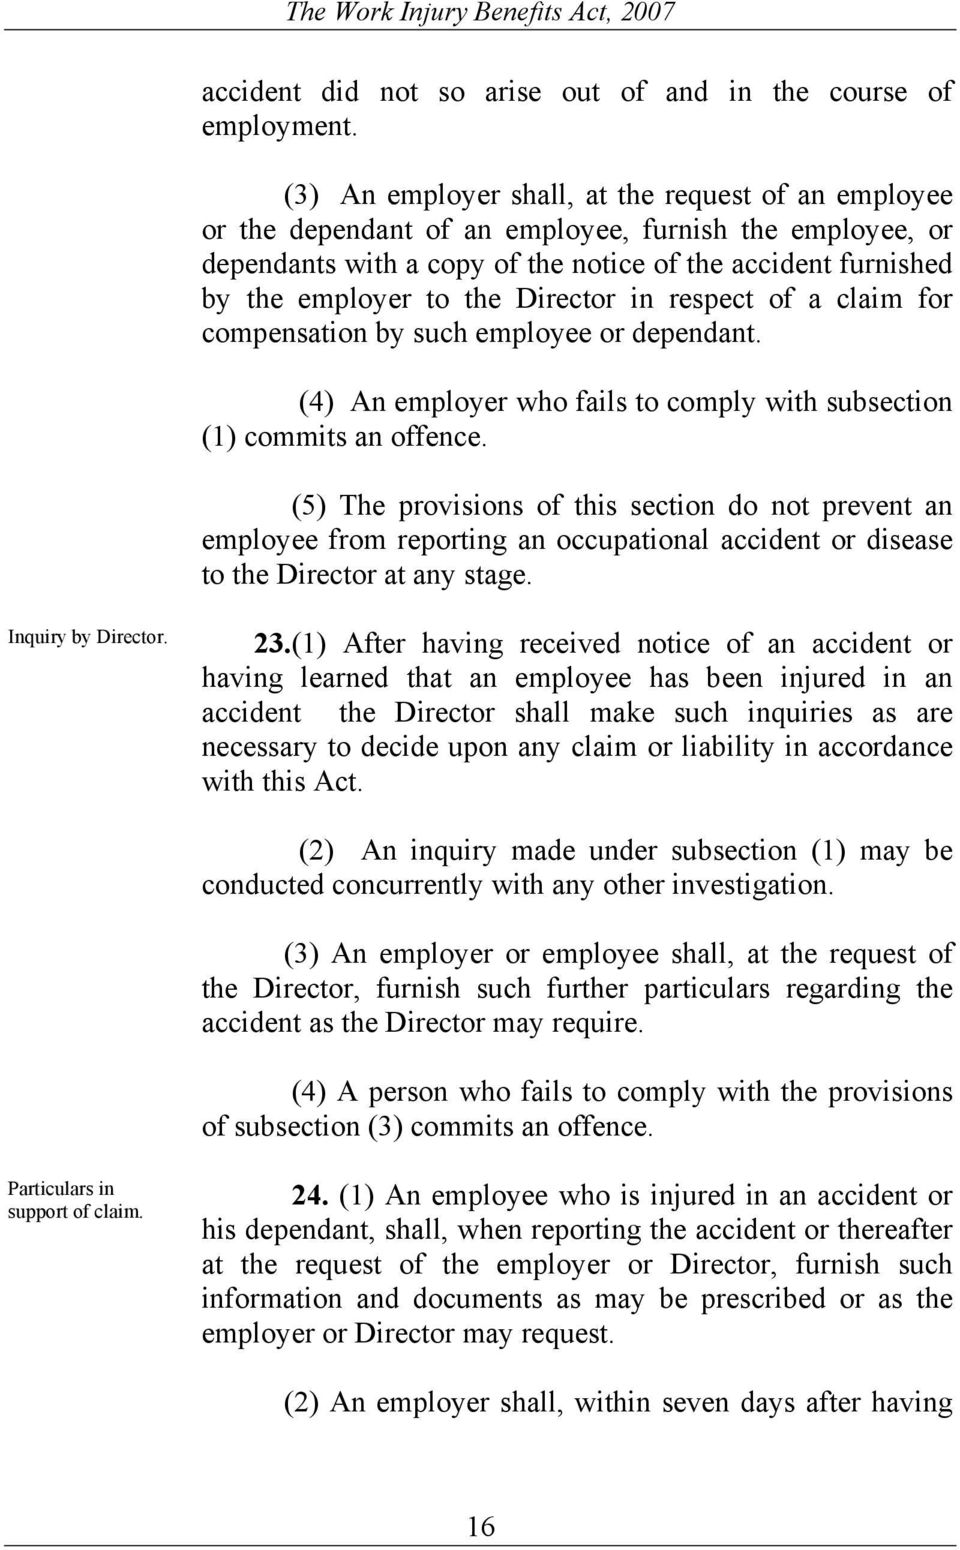 Director in respect of a claim for compensation by such employee or dependant. (4) An employer who fails to comply with subsection (1) commits an offence.